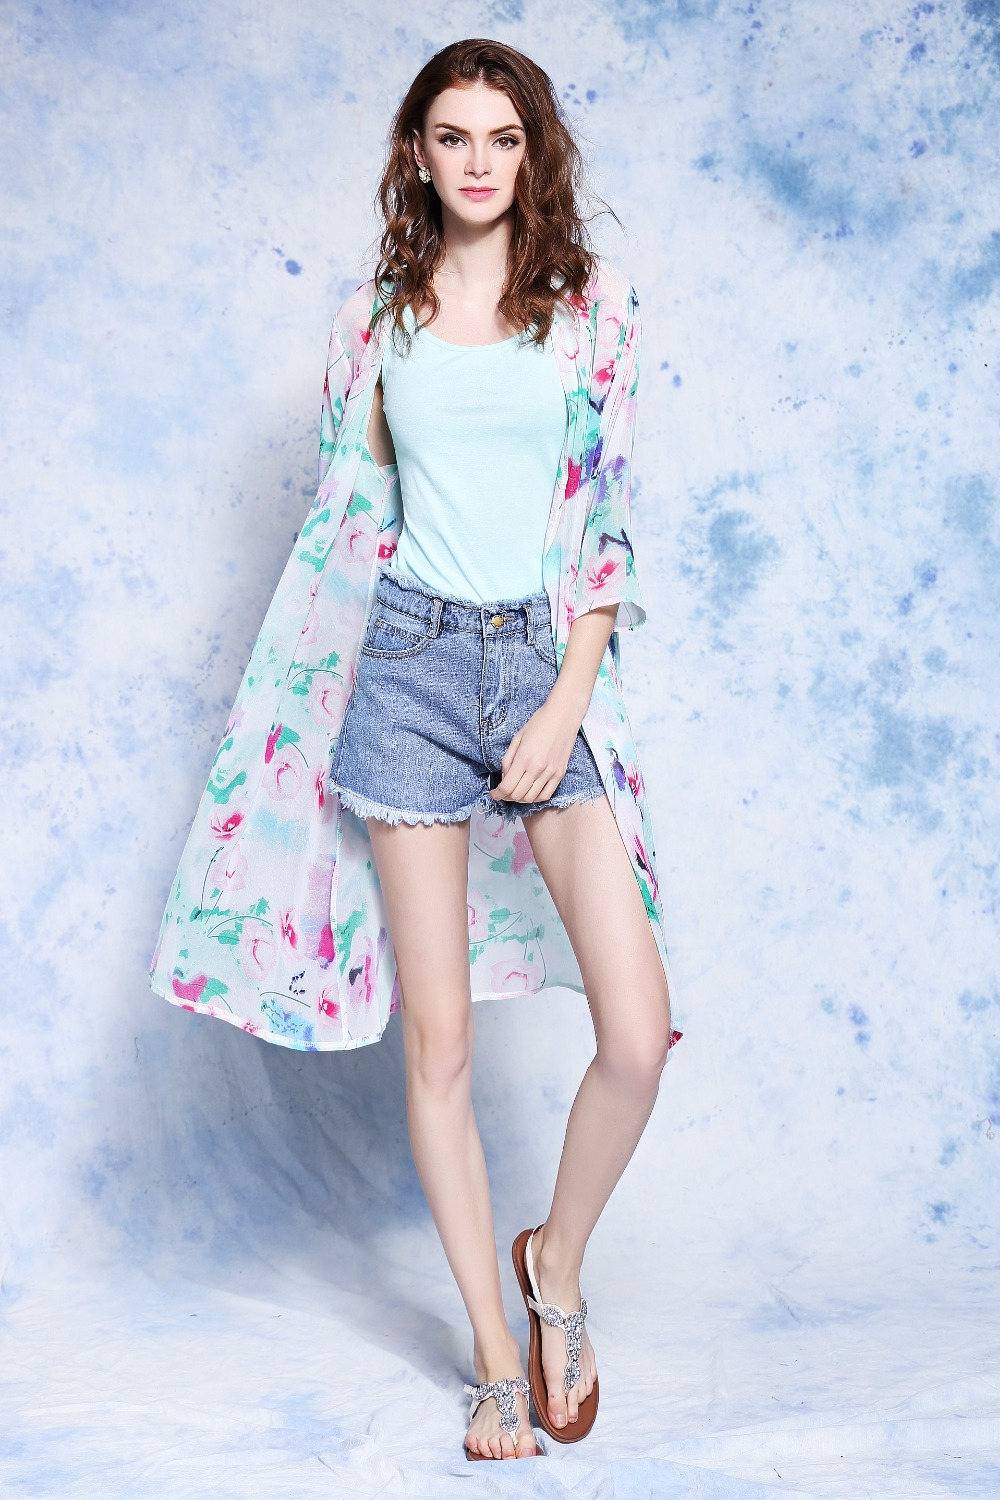 Women Summer Style Chiffon Half Sleeve Vintage Floral Printed kimono Beach Cover Up Cardigan Casual Blusas Tops